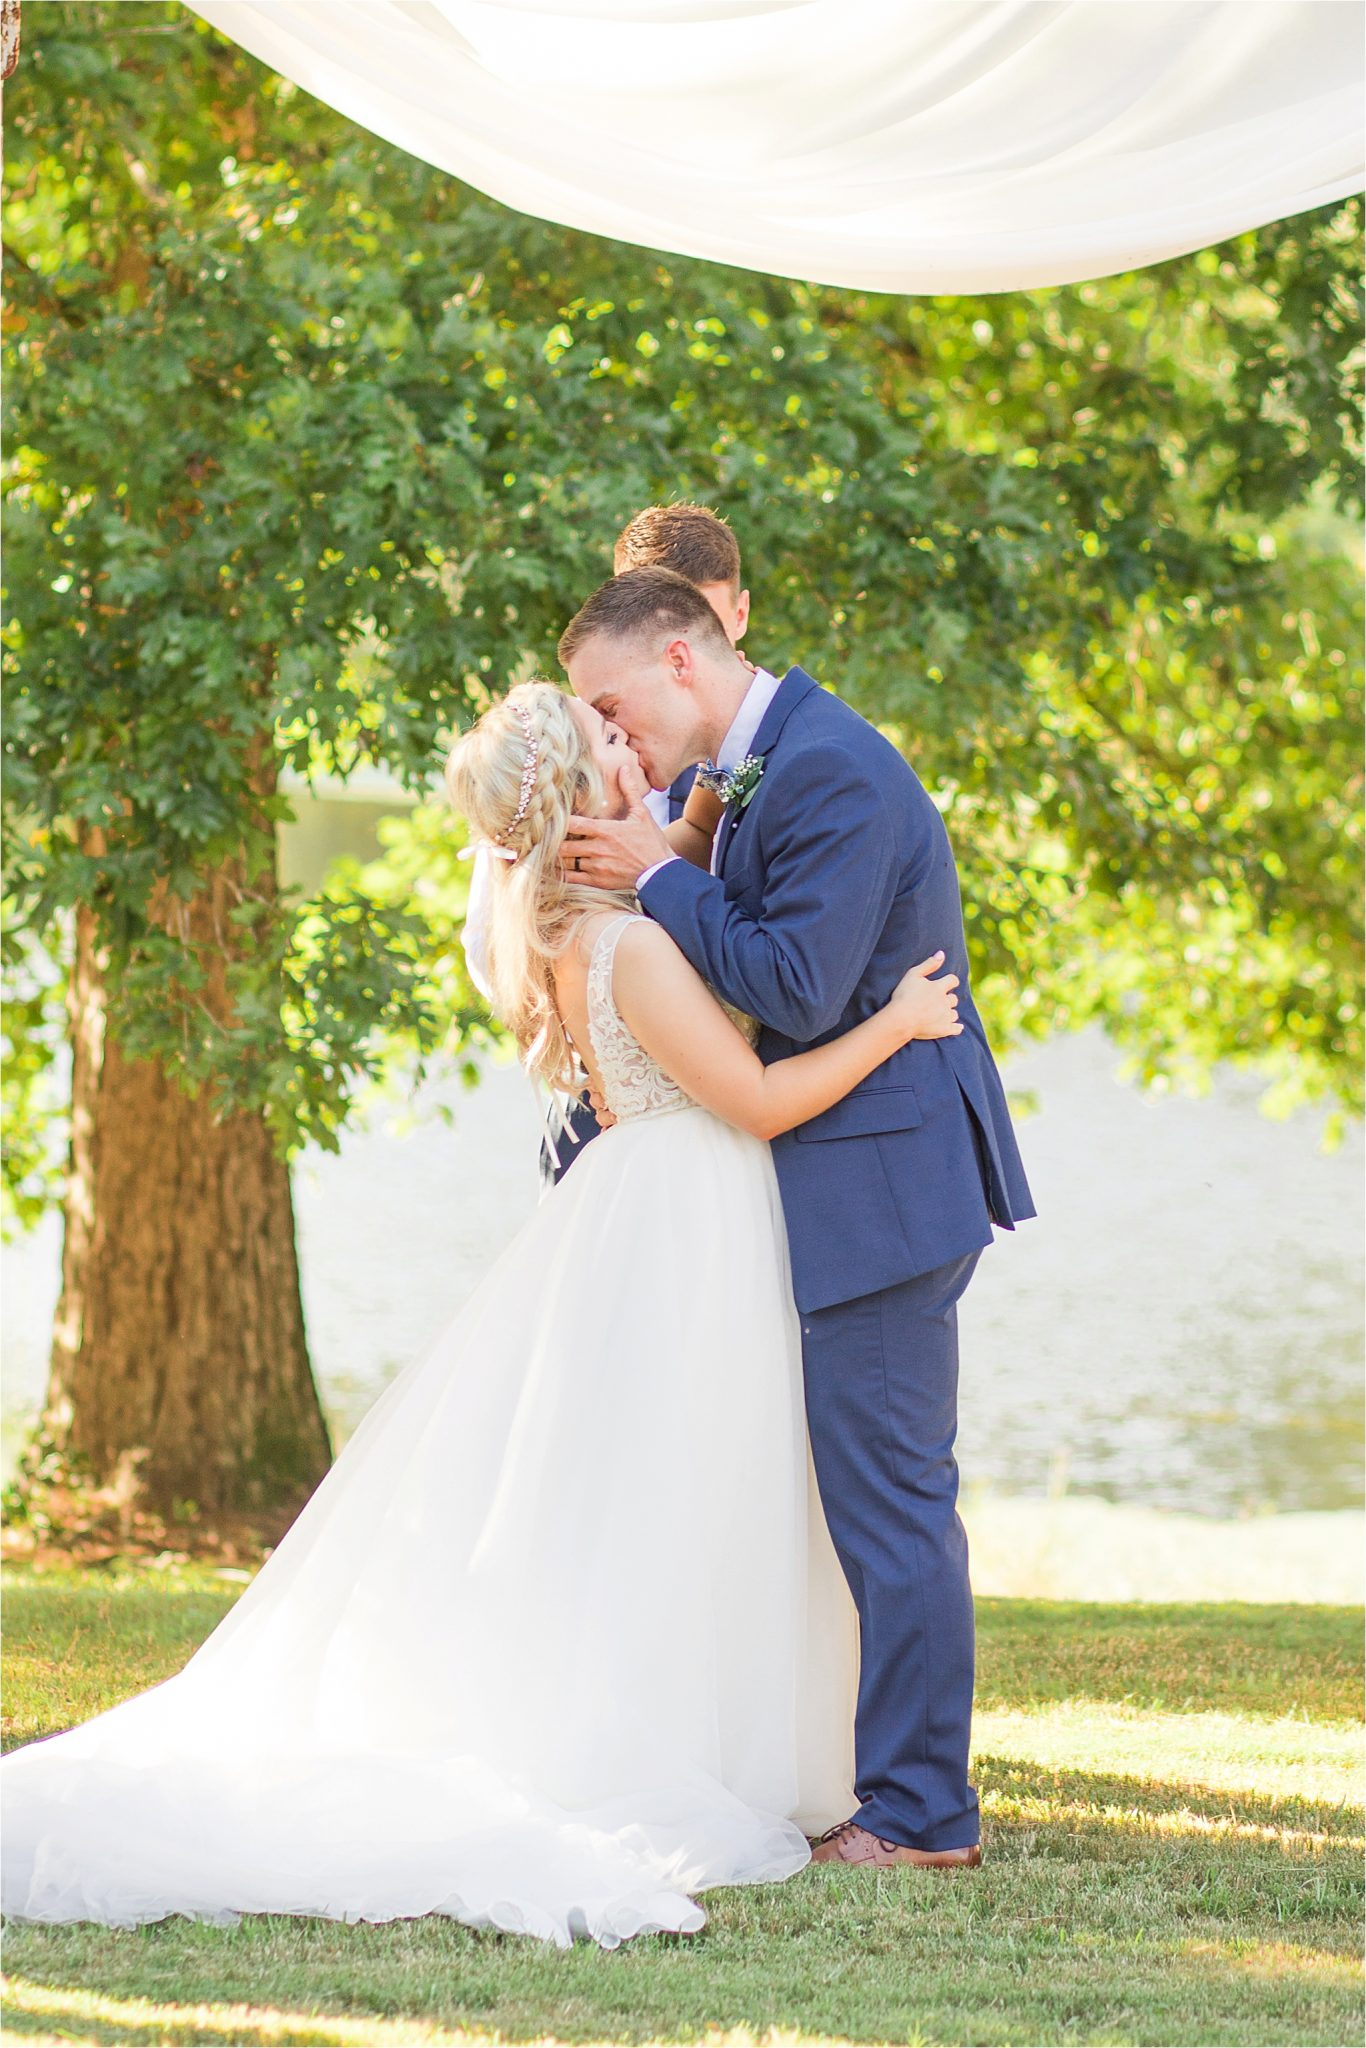 wedding-ceremony-alabama-wedding-photographer-blue-navy-first-kiss